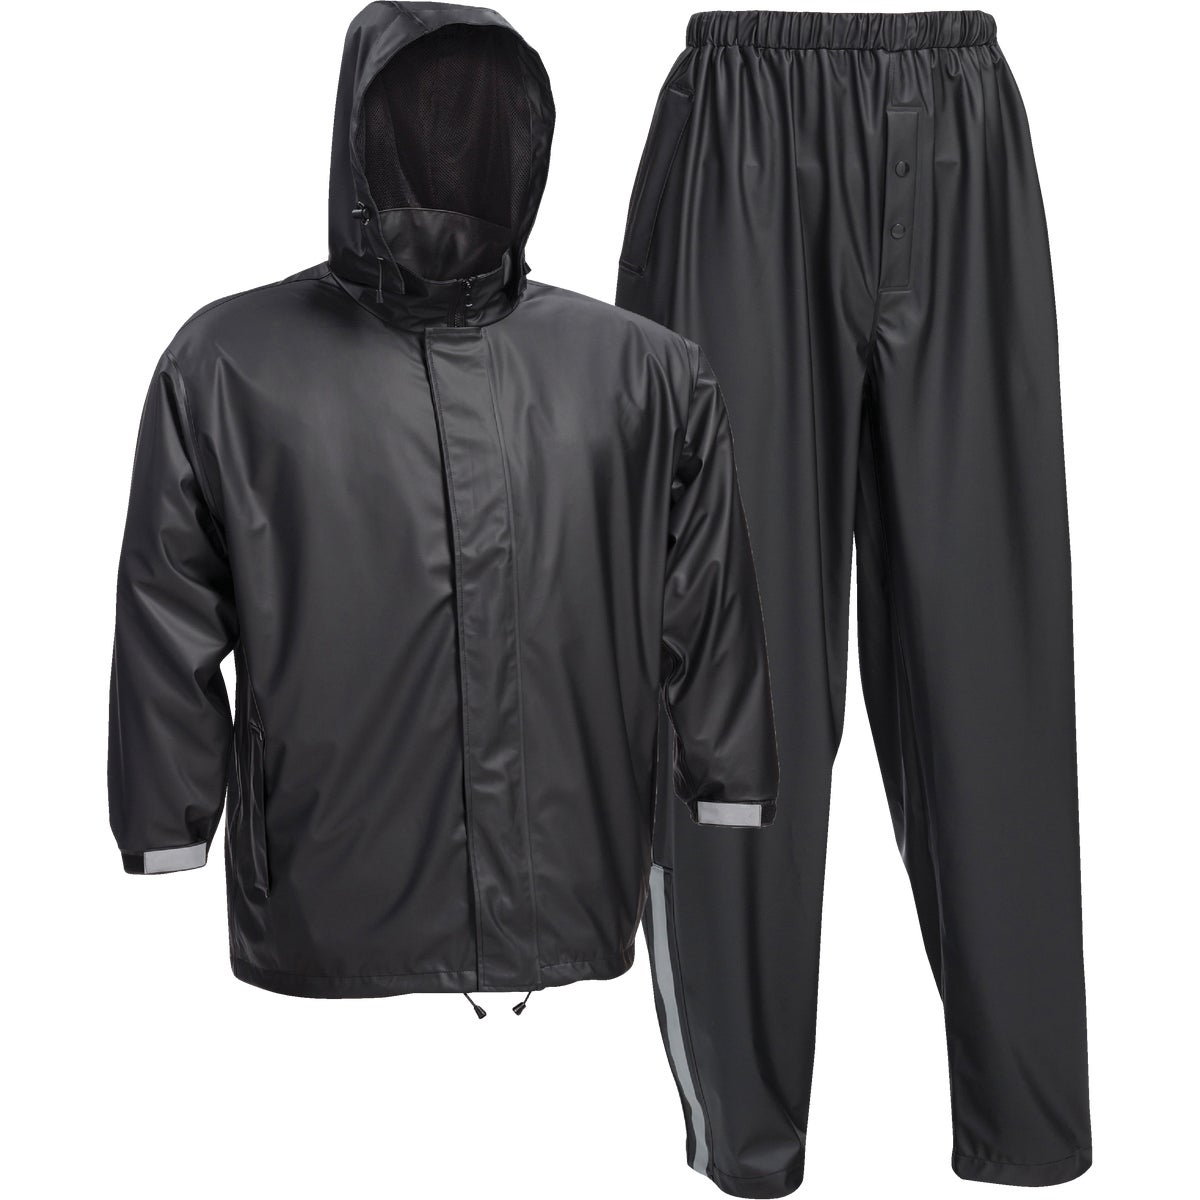 MED 3PC BLK NY RAIN SUIT - R103M by Custom Leathercraft